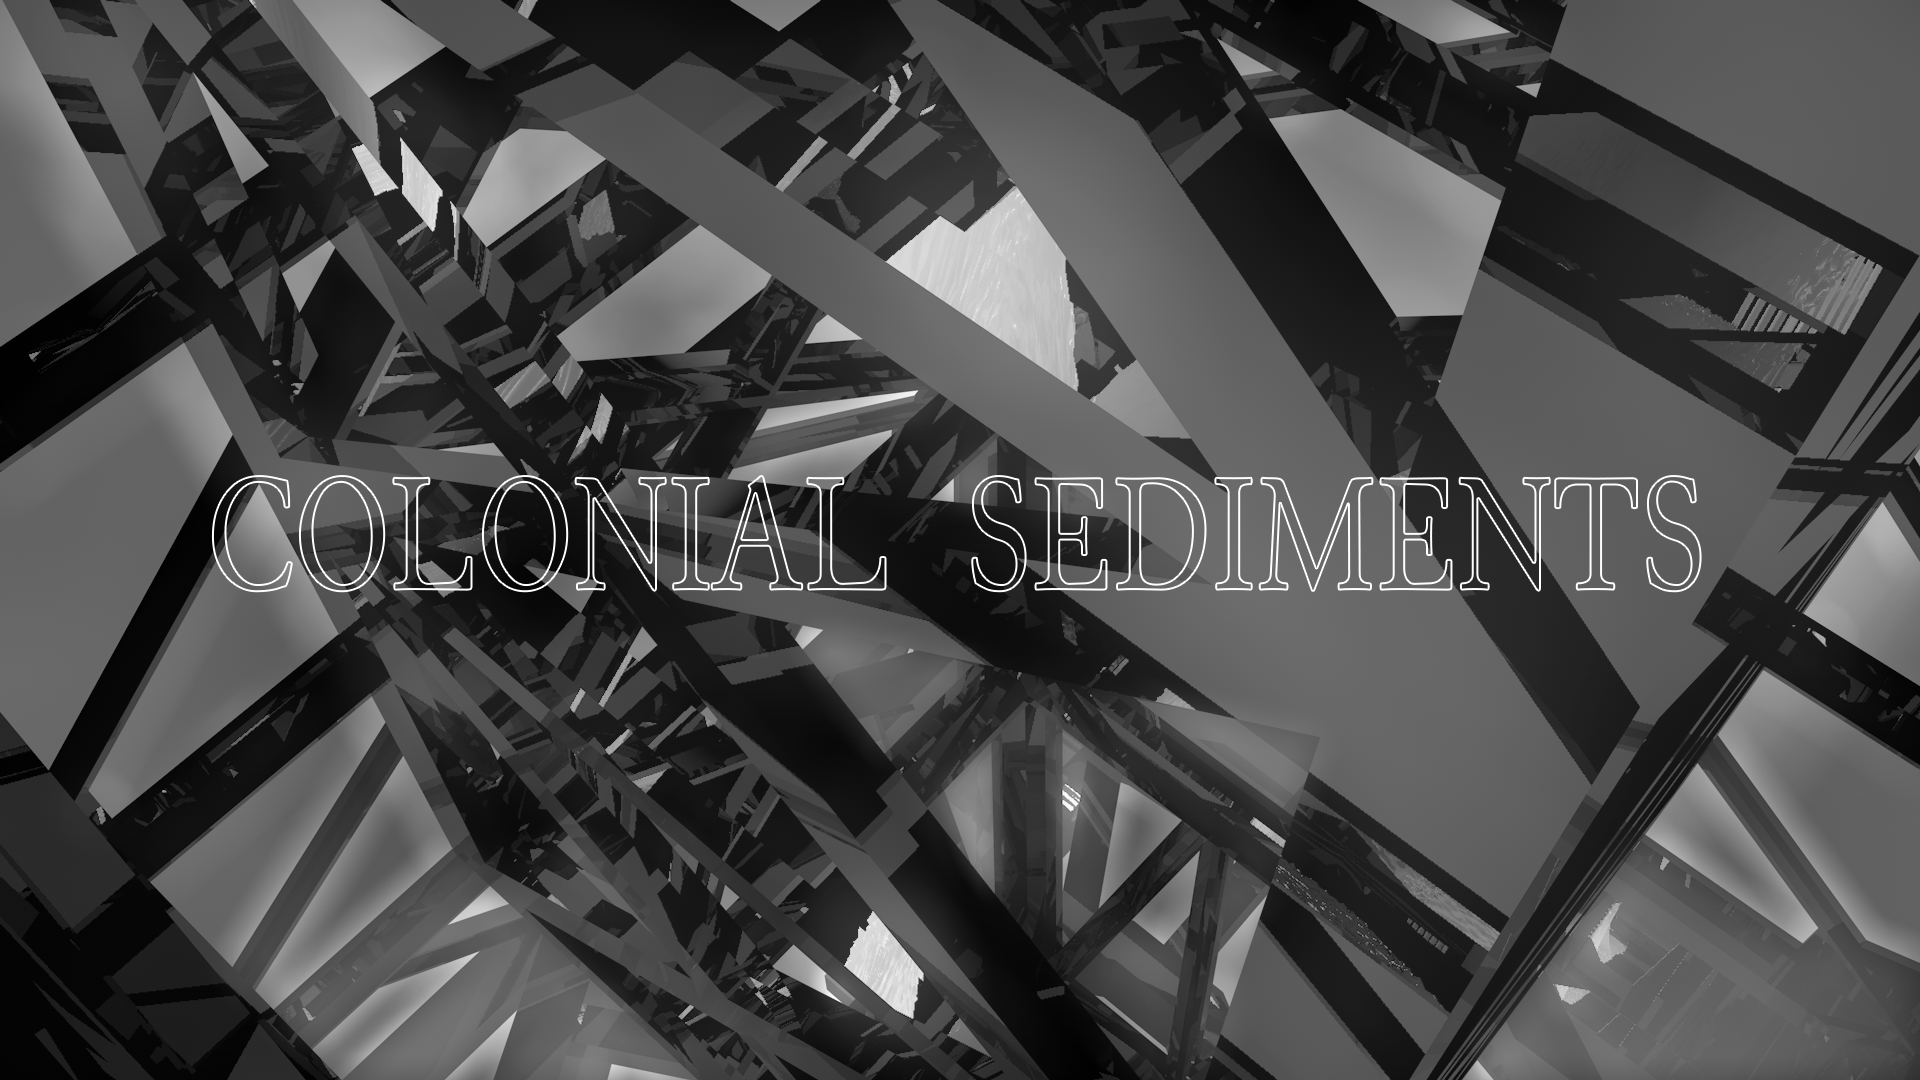 Still from the Colonial Sediments video (2020). Available during DEMO Moving Image Festival.